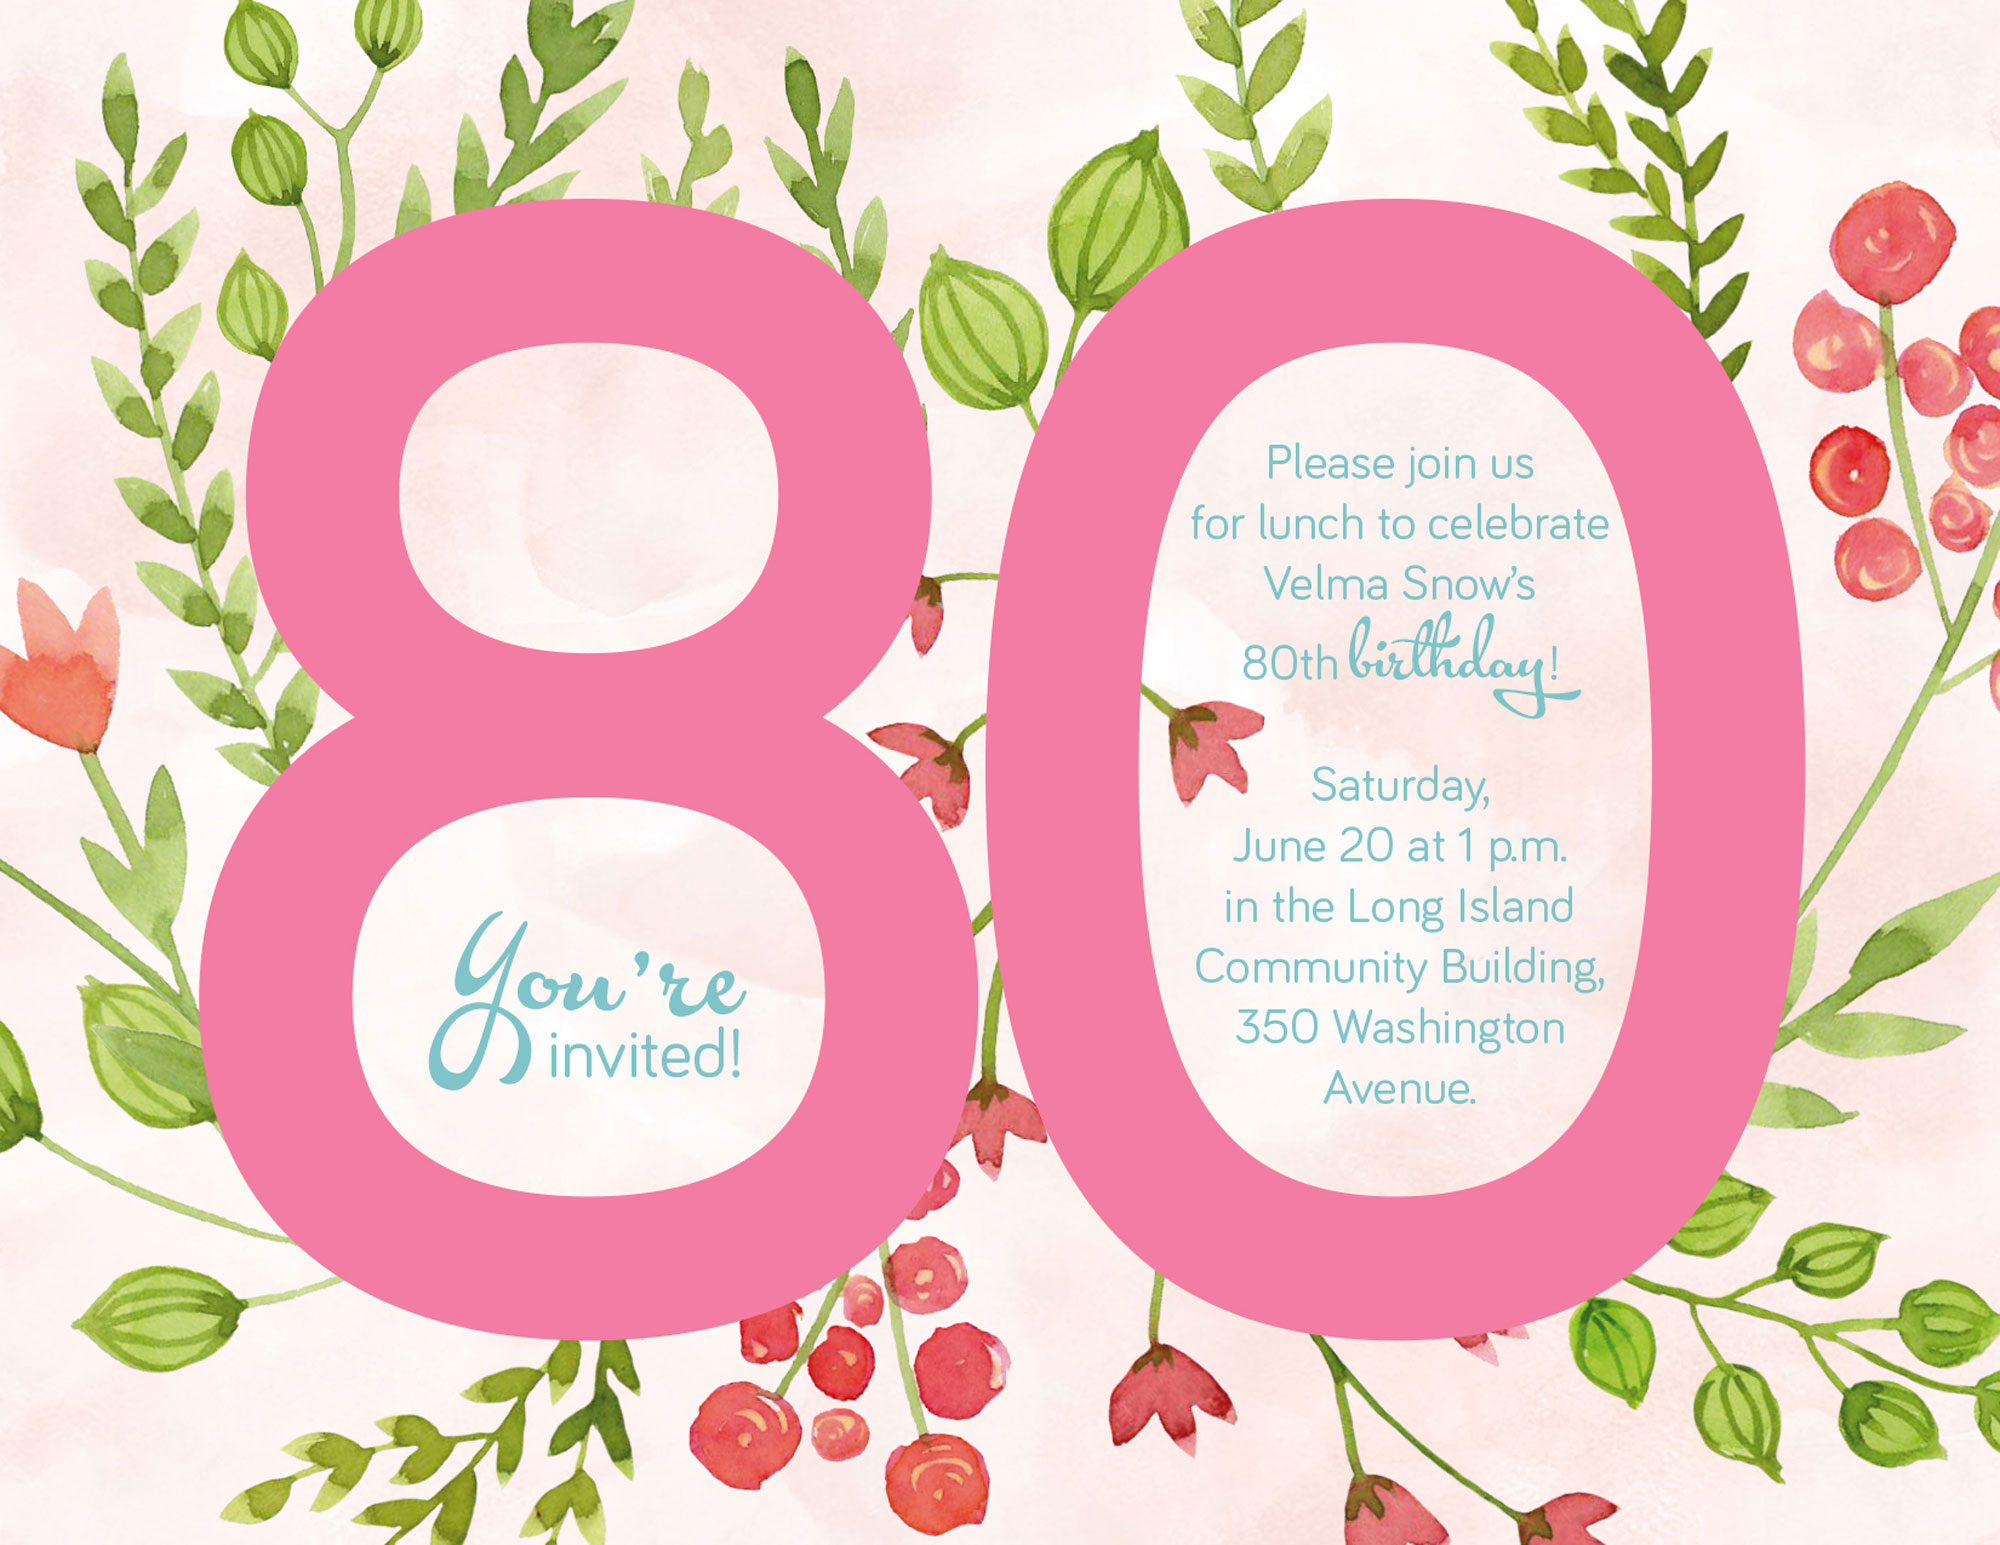 Grannie Turns 80 – What to Write in 80th Birthday Card